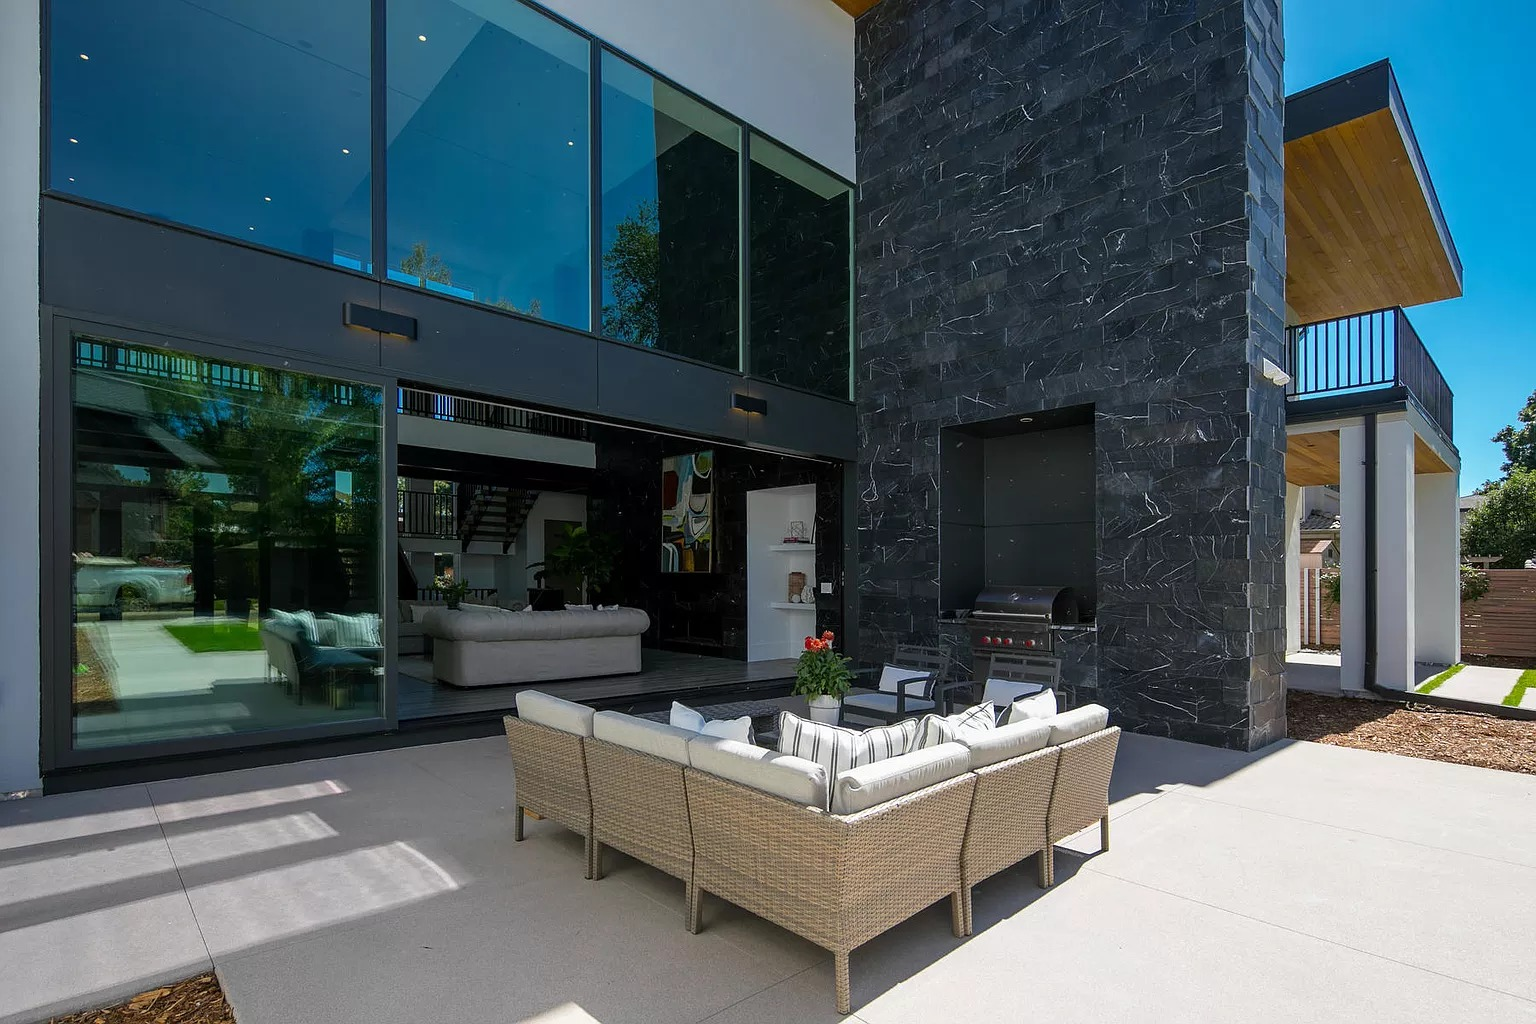 11 S Fairfax St, Denver, CO 80246 - $3,750,000 home for sale, house images, photos and pics gallery